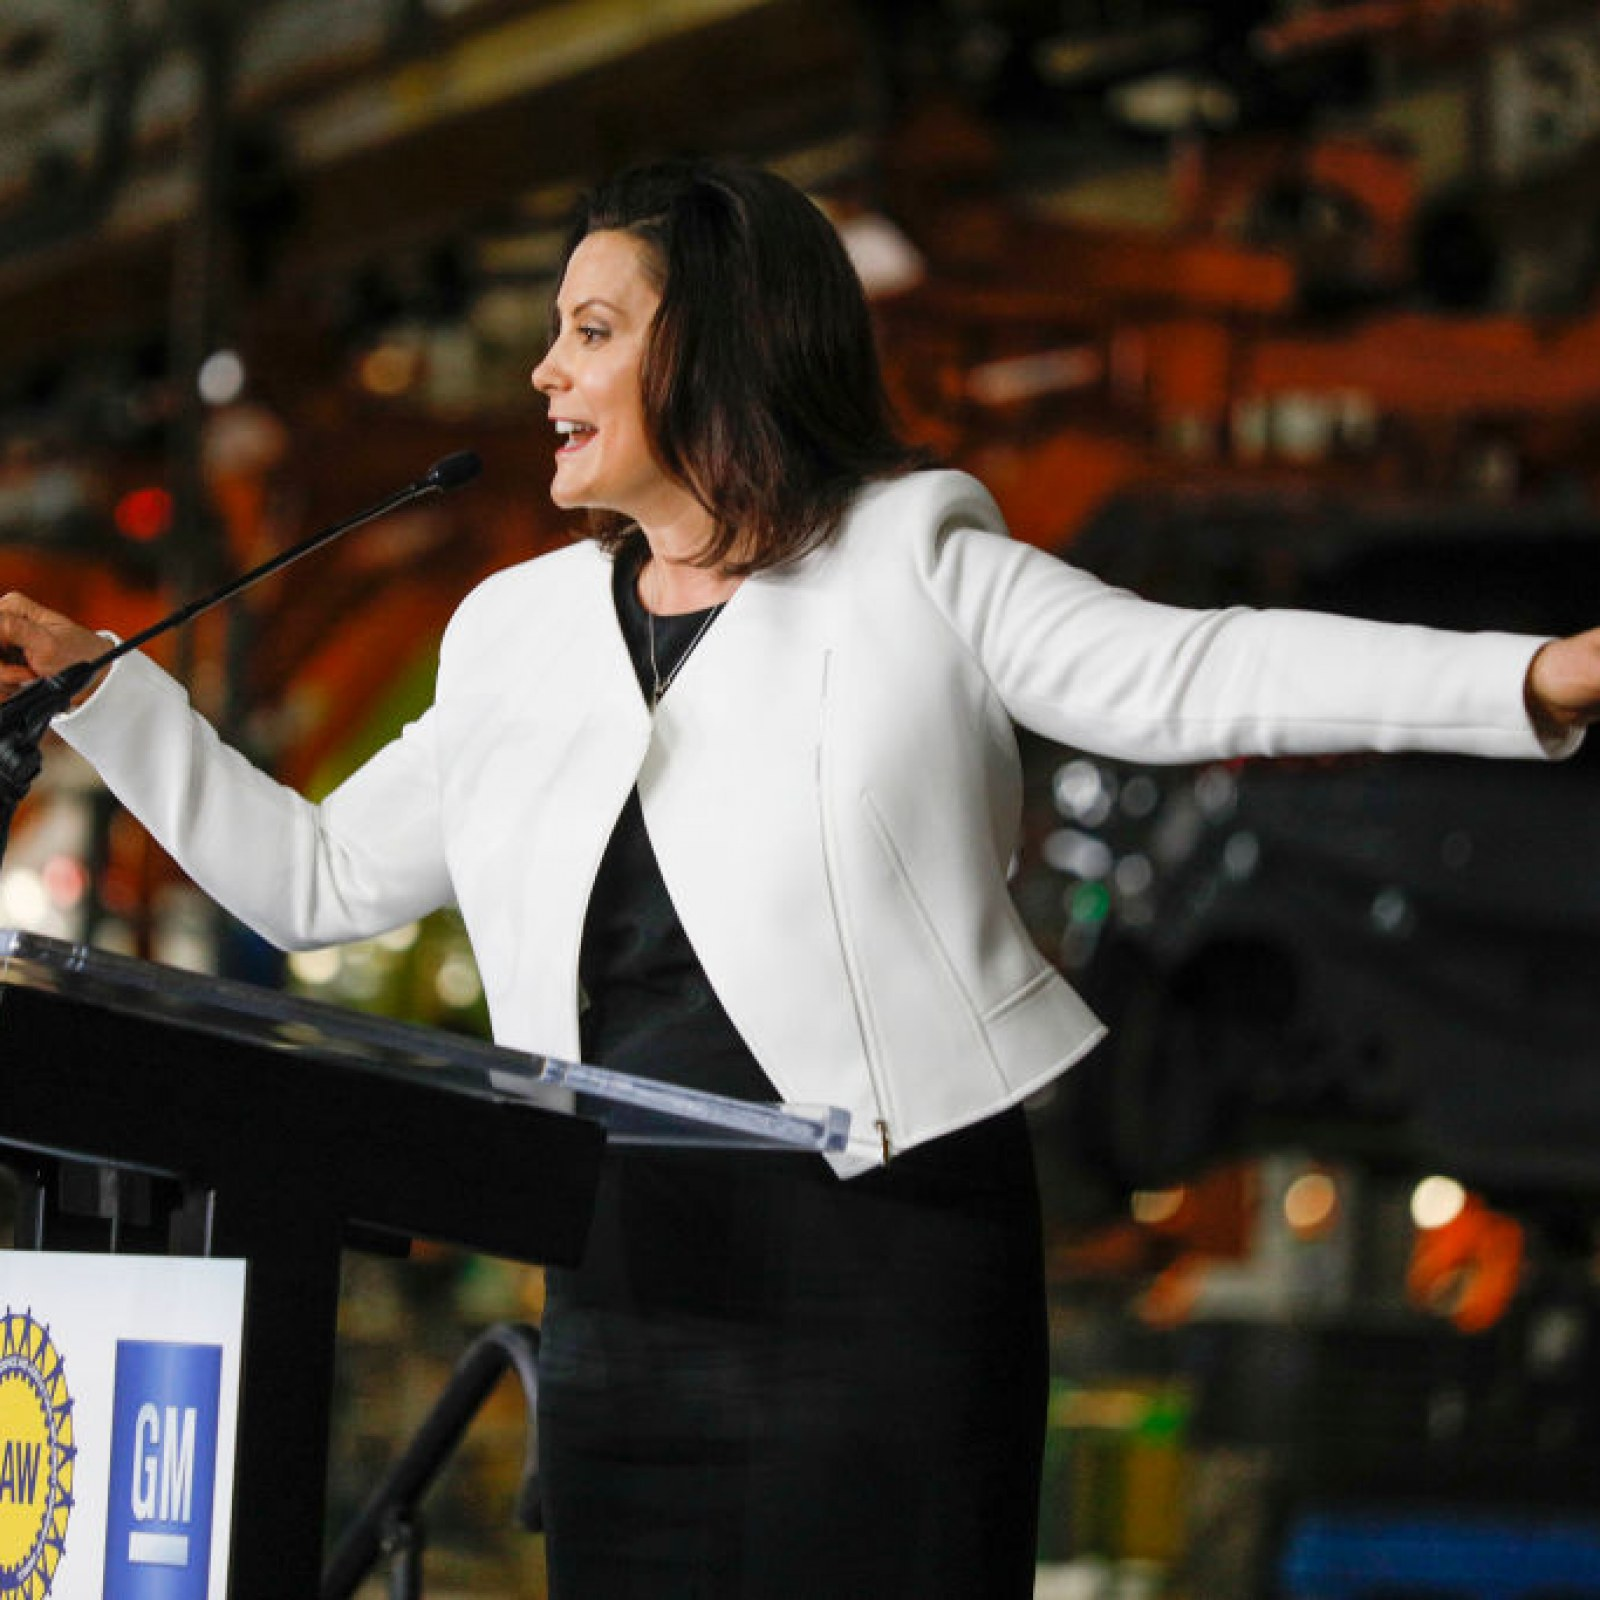 Michigan Governor Gretchen Whitmer Dismisses Vp Speculation The Job That I Want Is The One That I Have